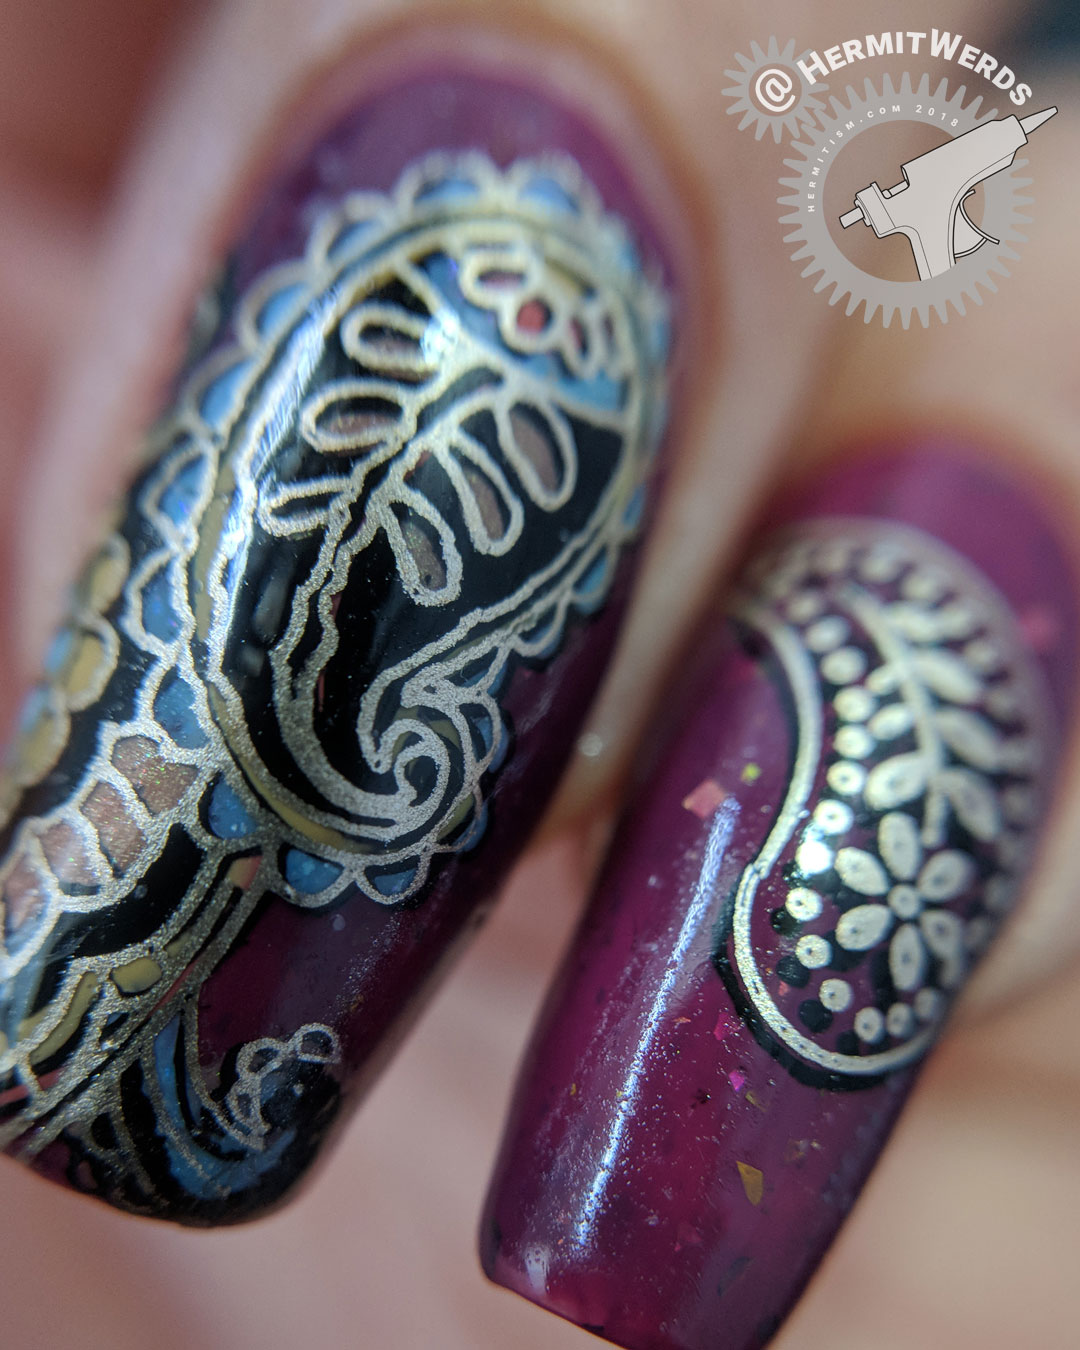 The Fanciest Paisley (macro) - Hermit Werds - ornate golden and cranberry paisley nail art